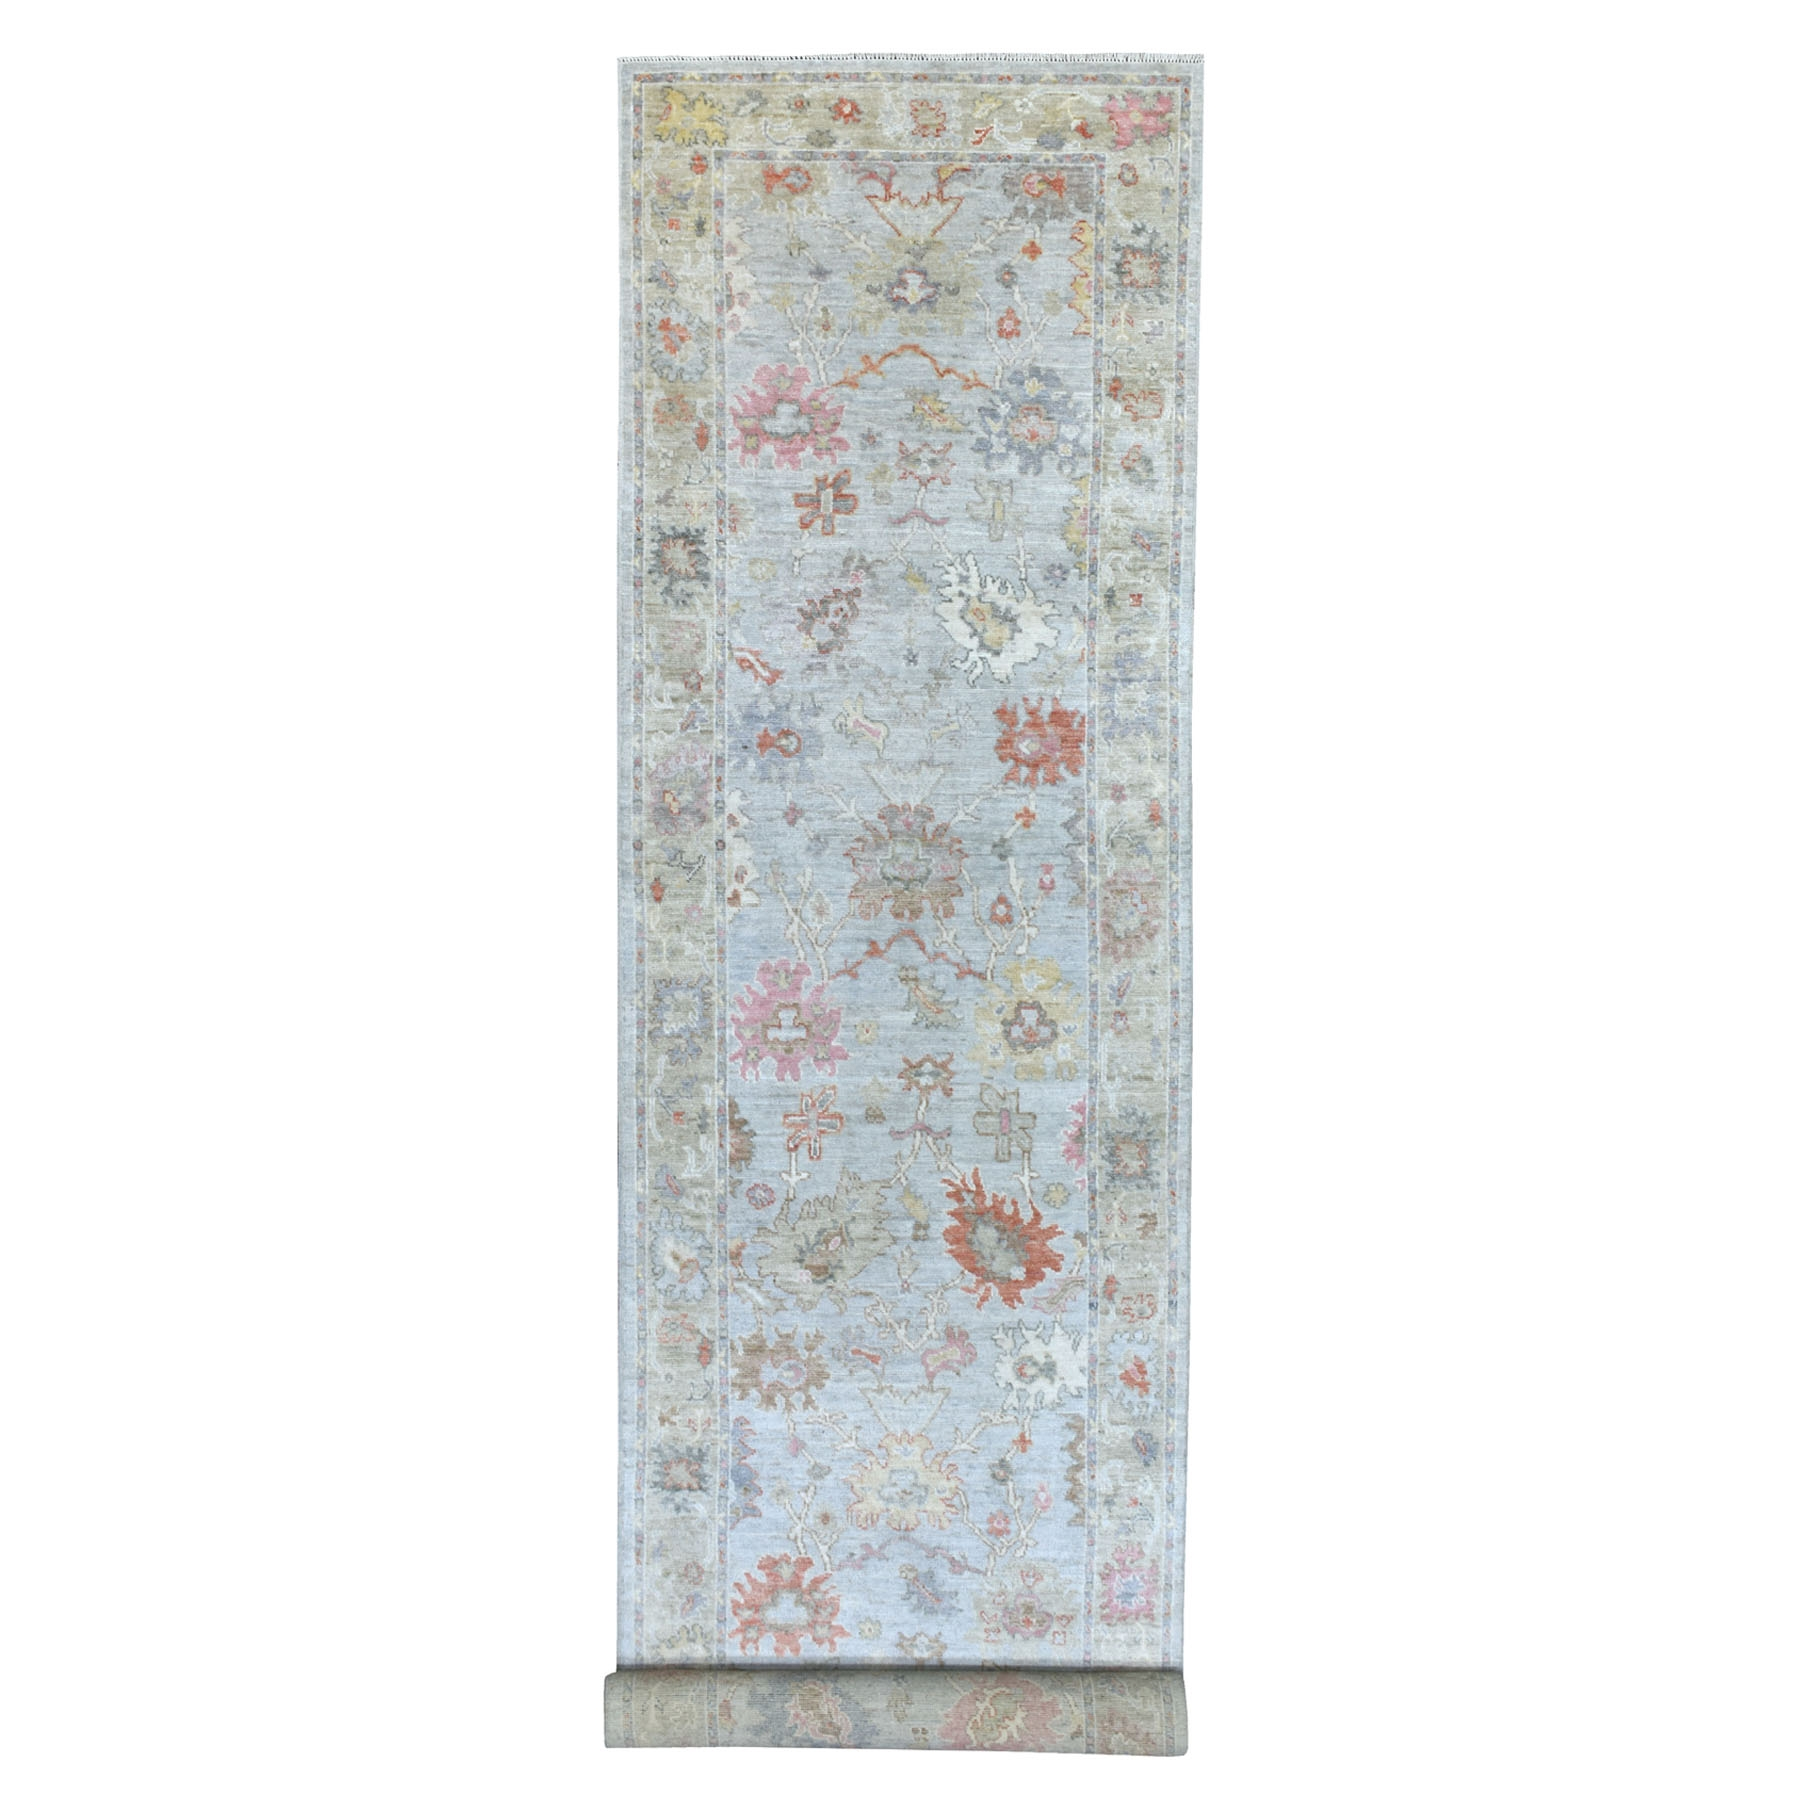 "4'x19'5"" Gray Sun-Dried Wool Hand Knotted With Soft Colors Angora Oushak Oriental Wide Gallery Size Runner Rug"